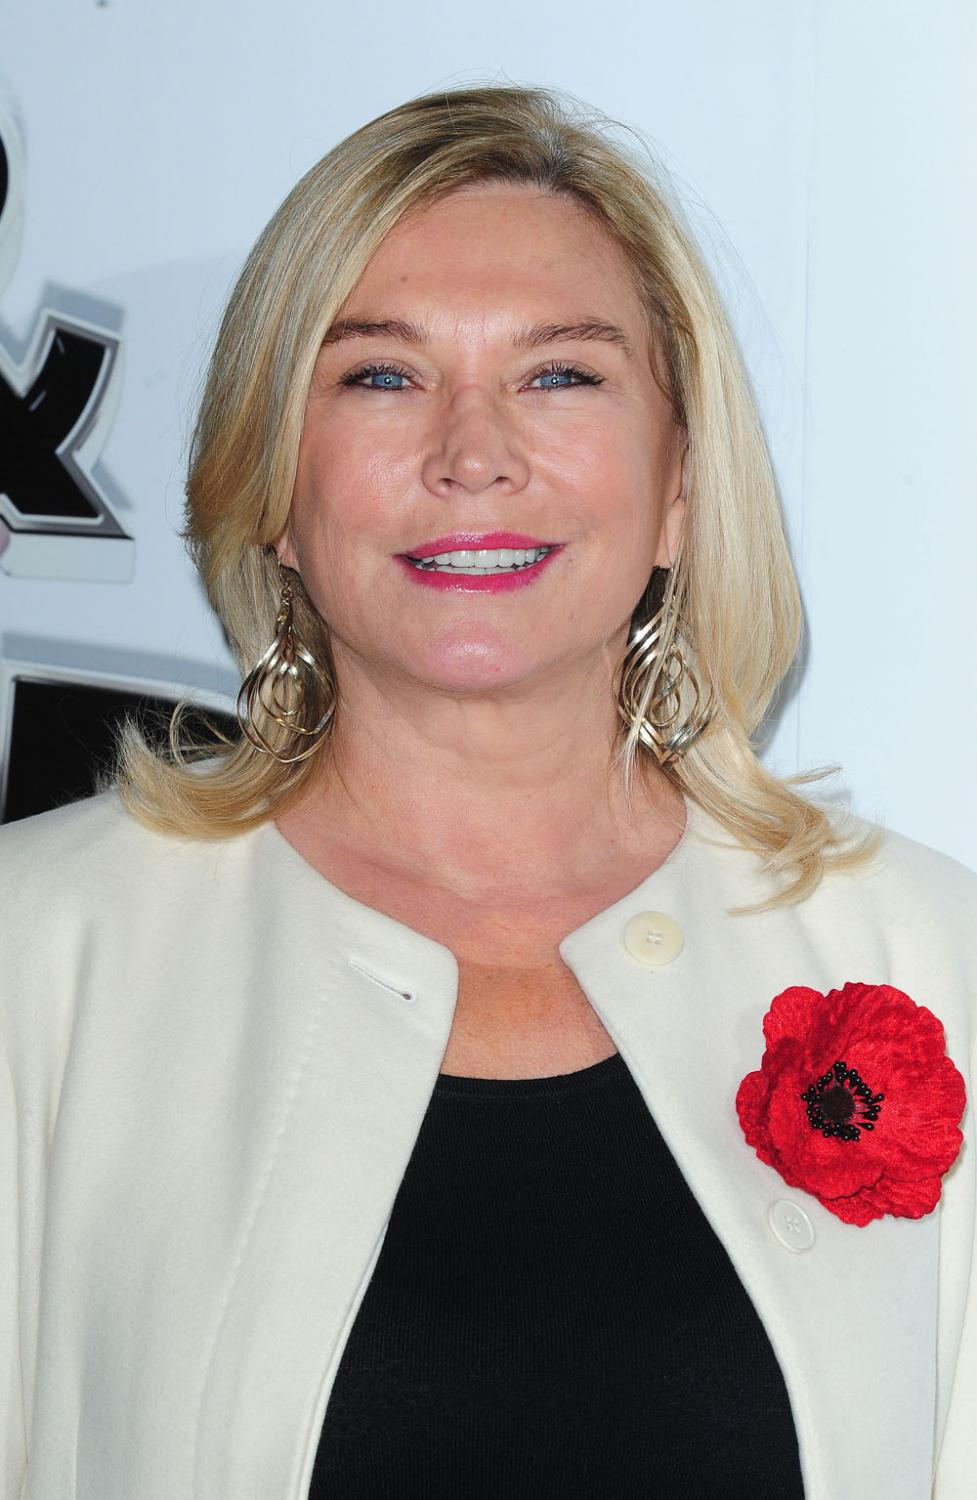 amanda redman net worthamanda redman injury, amanda redman hand, amanda redman, amanda redman arm, amanda redman biography, amanda redman wiki, amanda redman actress, аманда редман, amanda redman young, amanda redman burns, amanda redman 2015, amanda redman leaves new tricks, amanda redman imdb, amanda redman daughter new tricks, amanda redman hot, amanda redman wedding, amanda redman twitter, amanda redman net worth, amanda redman facelift, amanda redman daughter